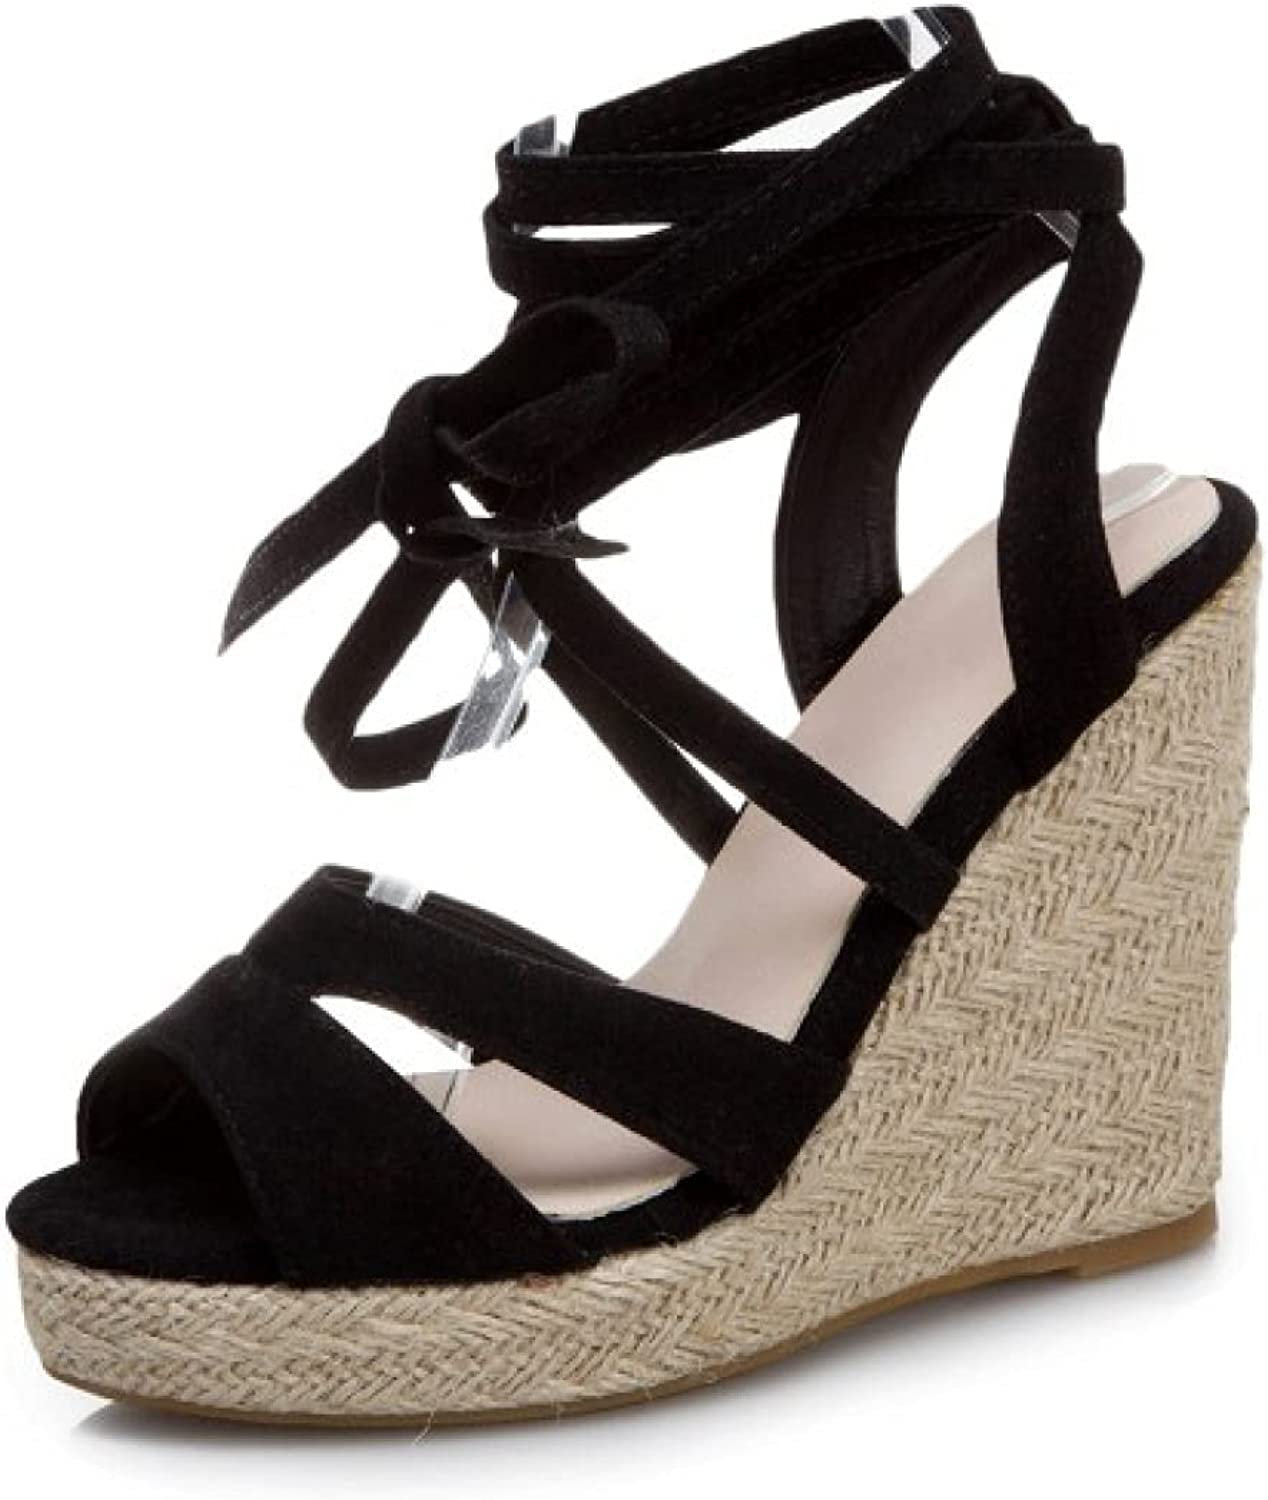 Platform Department store Sandal for Womens Weekly update Peep No Crossover Strappy Toe Stylish